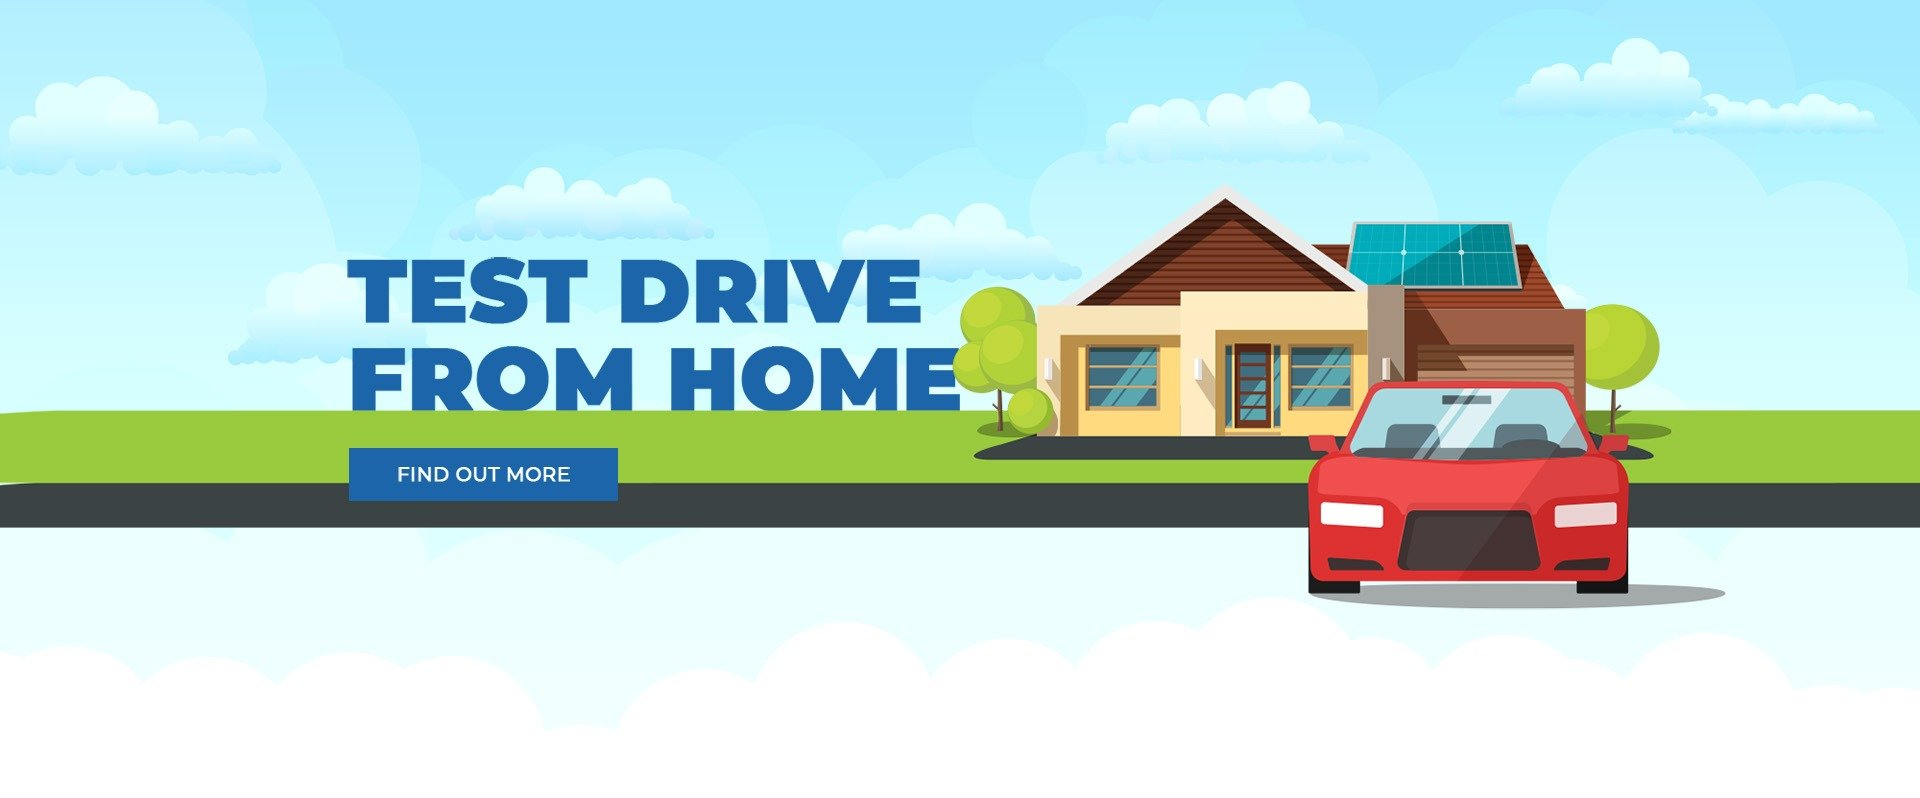 Dubbo Volkswagen | Test Drive From Home Banner